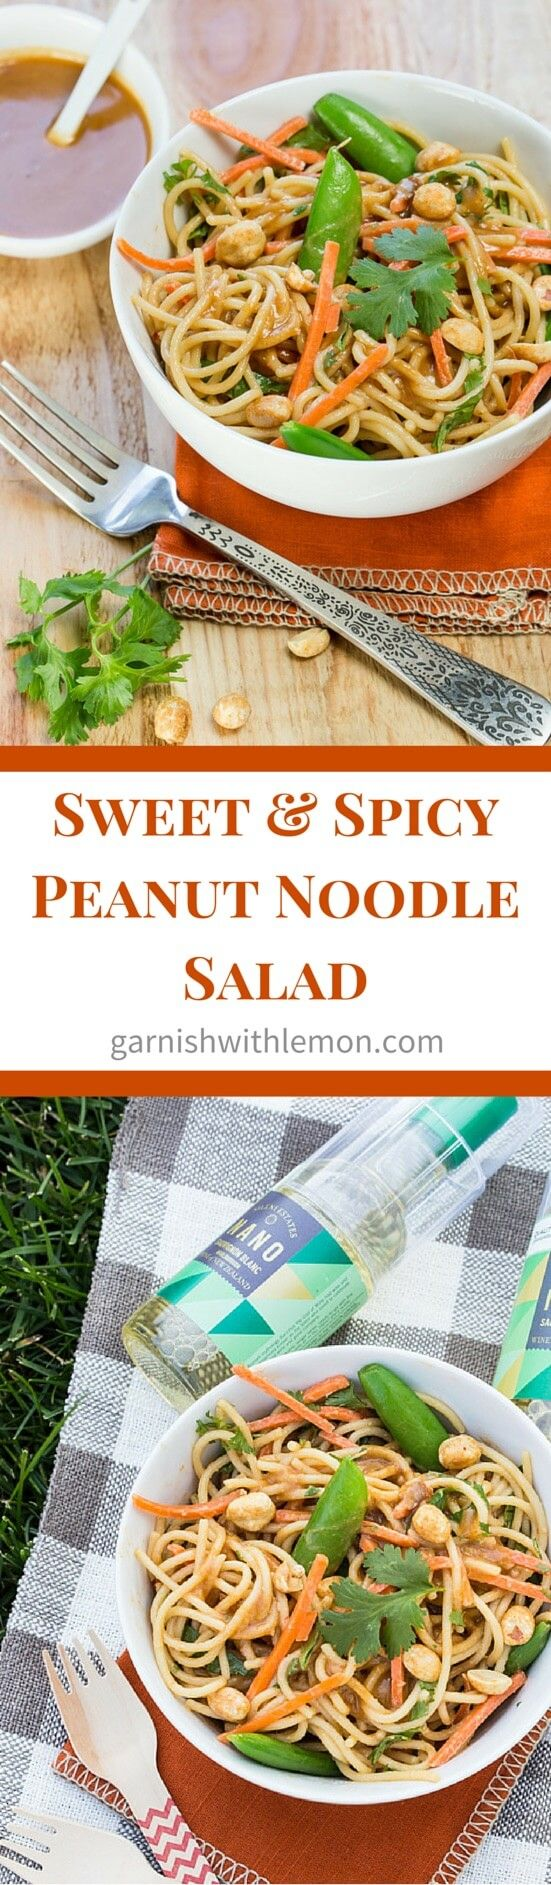 Summer nights don't get much better than dining al fresco with a make ahead Sweet and Spicy Peanut Noodle Salad ~ http://www.garnishwithlemon.com